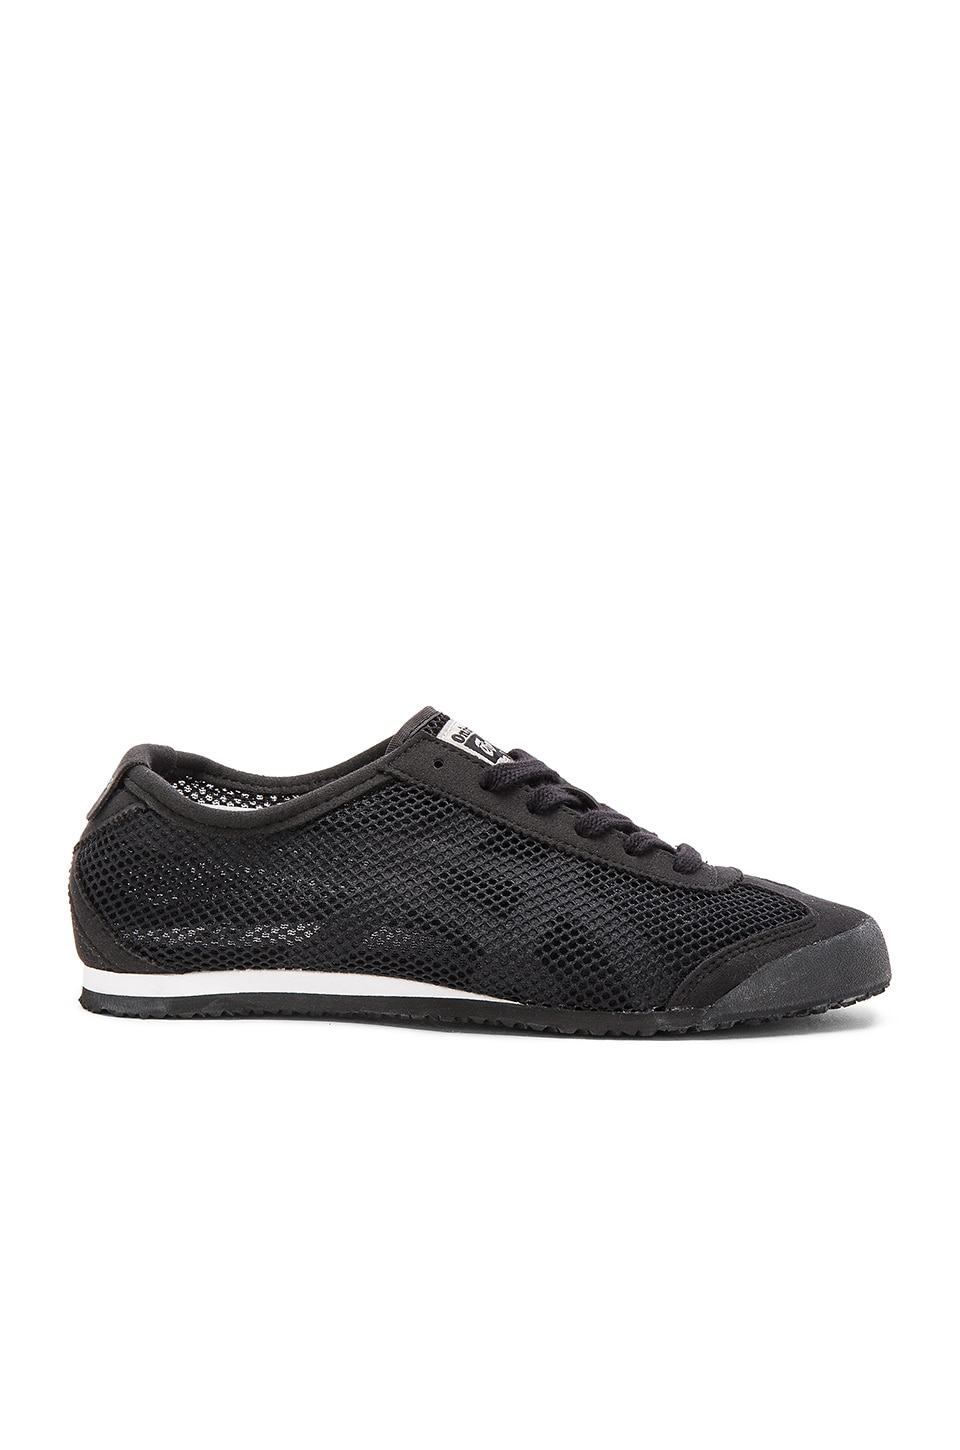 sports shoes a2f8b 1ac73 Onitsuka Tiger Mexico 66 Sneaker in Black & White | REVOLVE